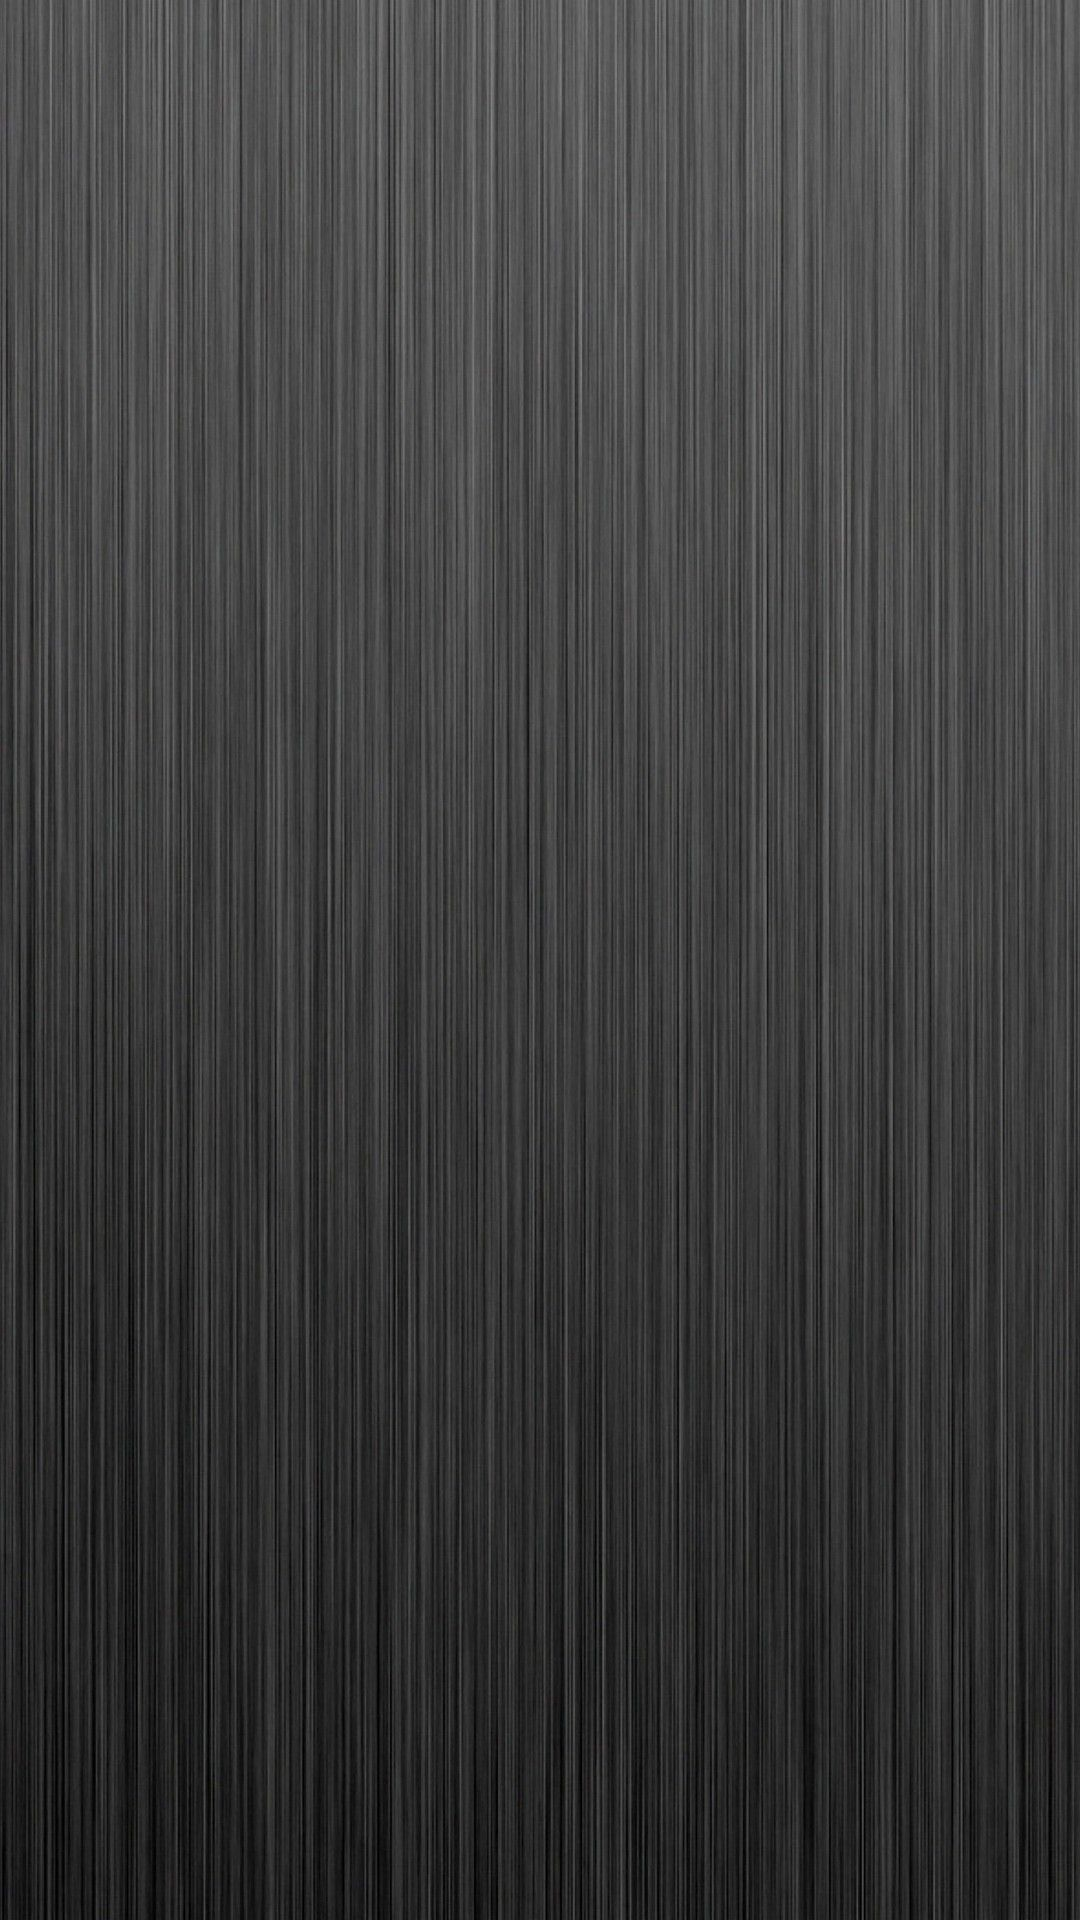 Grey Iphone Wallpaper Grey Wallpaper Iphone Grey